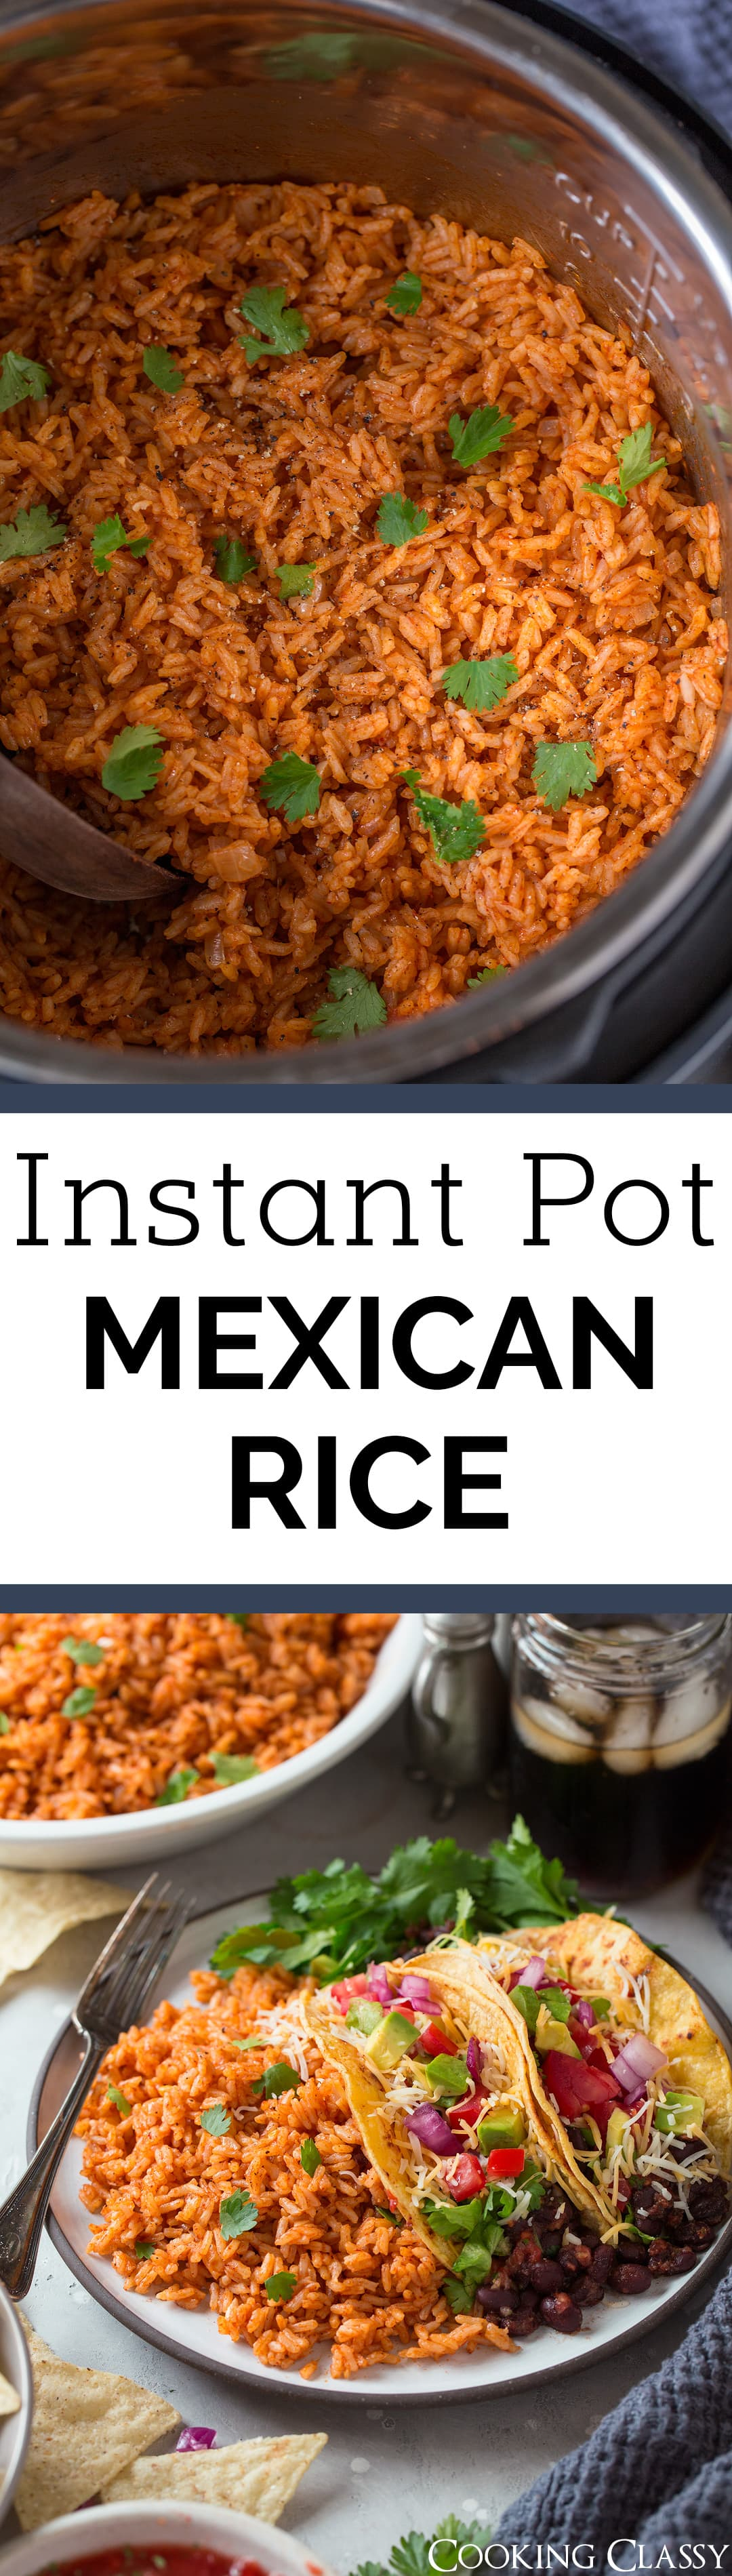 Instant Pot Mexican Rice - this will likely become a new go-to side dish to your favorite Mexican food! It's easy to make and cooks quickly in the pressure cooker, plus it has that delicious, authentic tomato based flavor. I've already made this four times and I plan to make it many more, my family loves it! #mexicanrice #rice #sidedish #instantpot #recipe